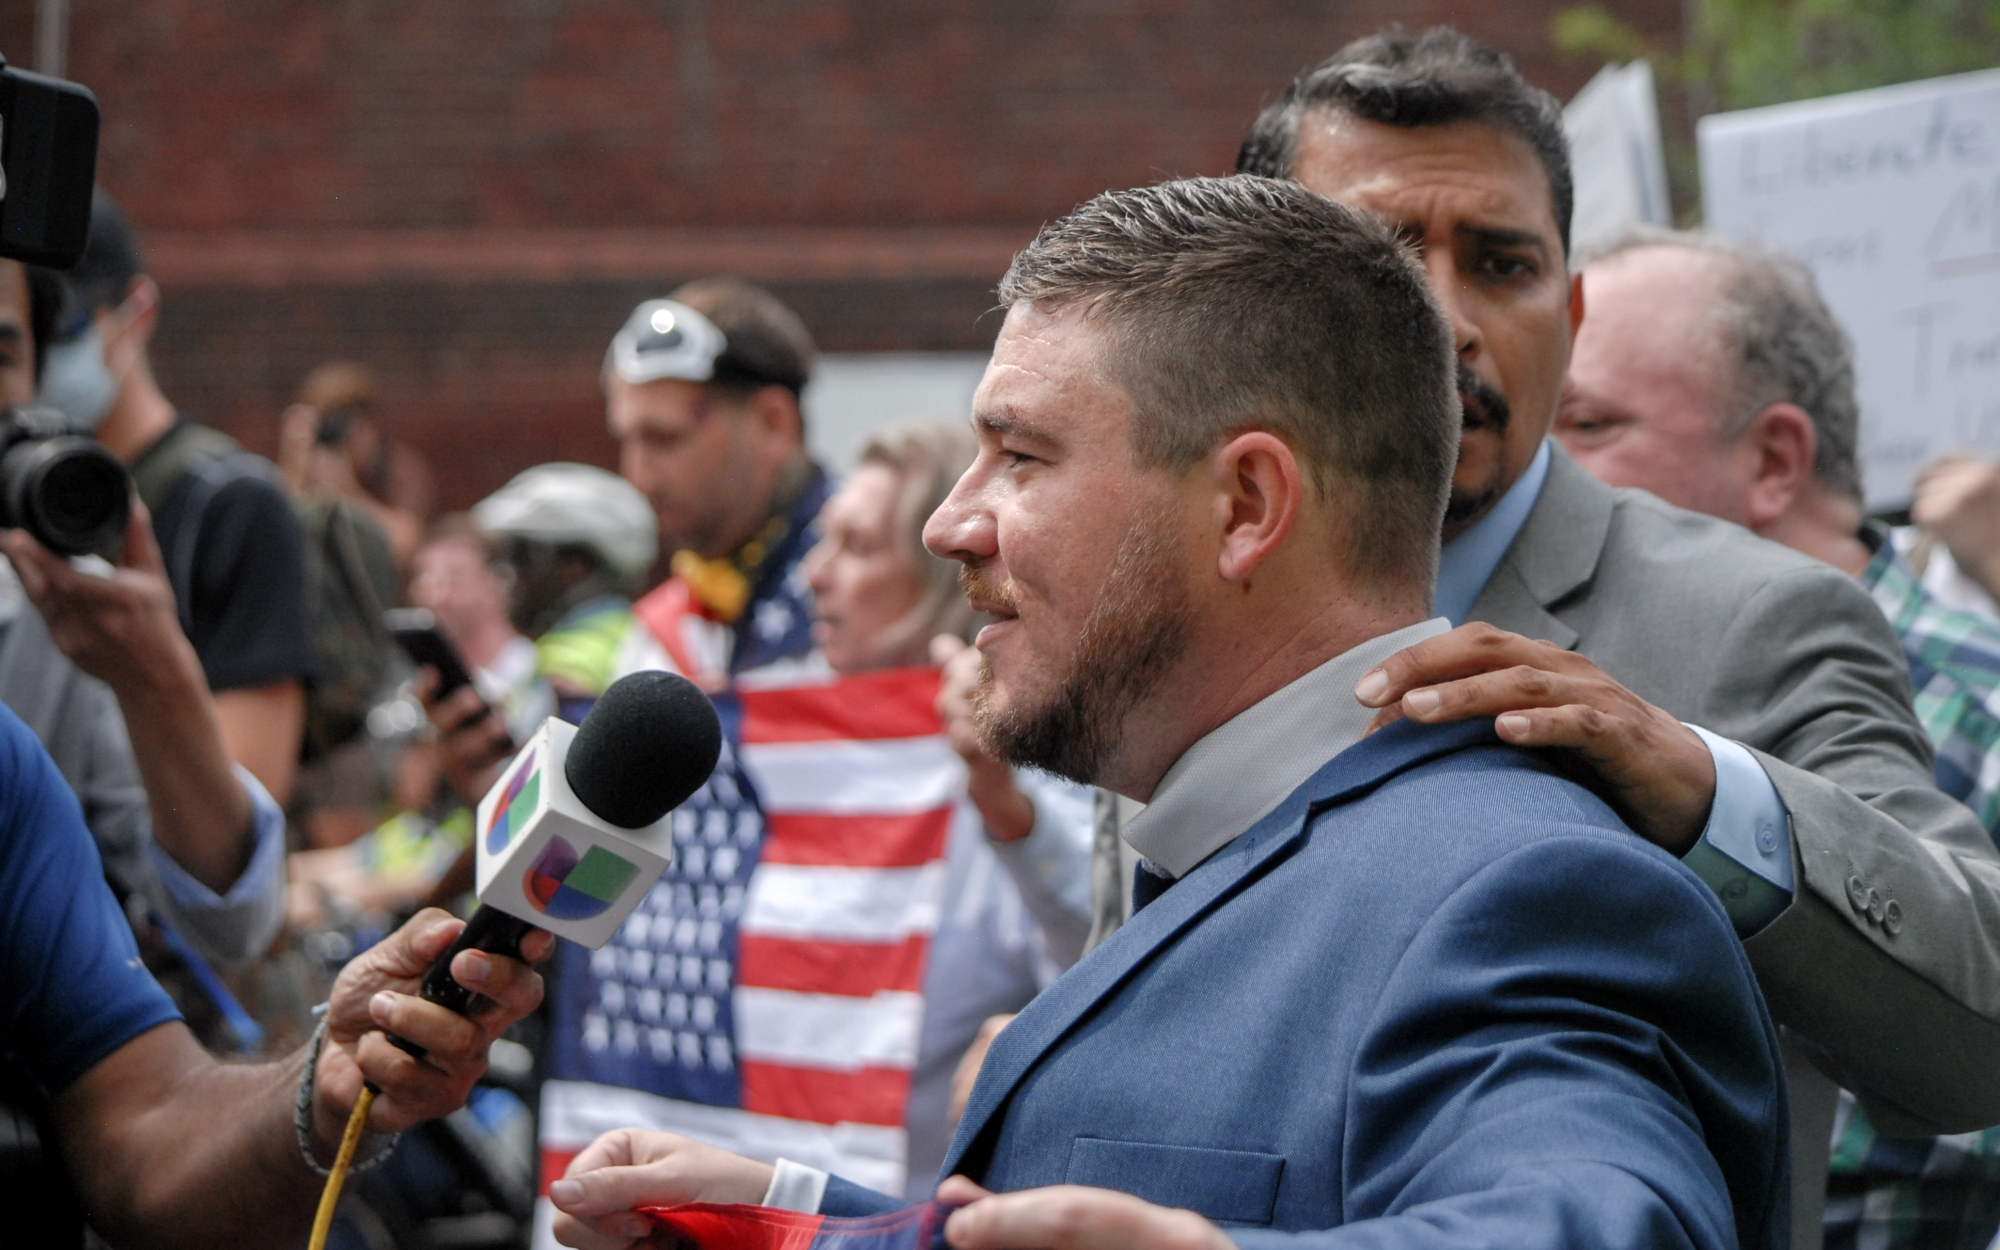 Jason Kessler speaks with reporters at Unite the Right 2 in Washington D.C. on Aug. 12, 2018.